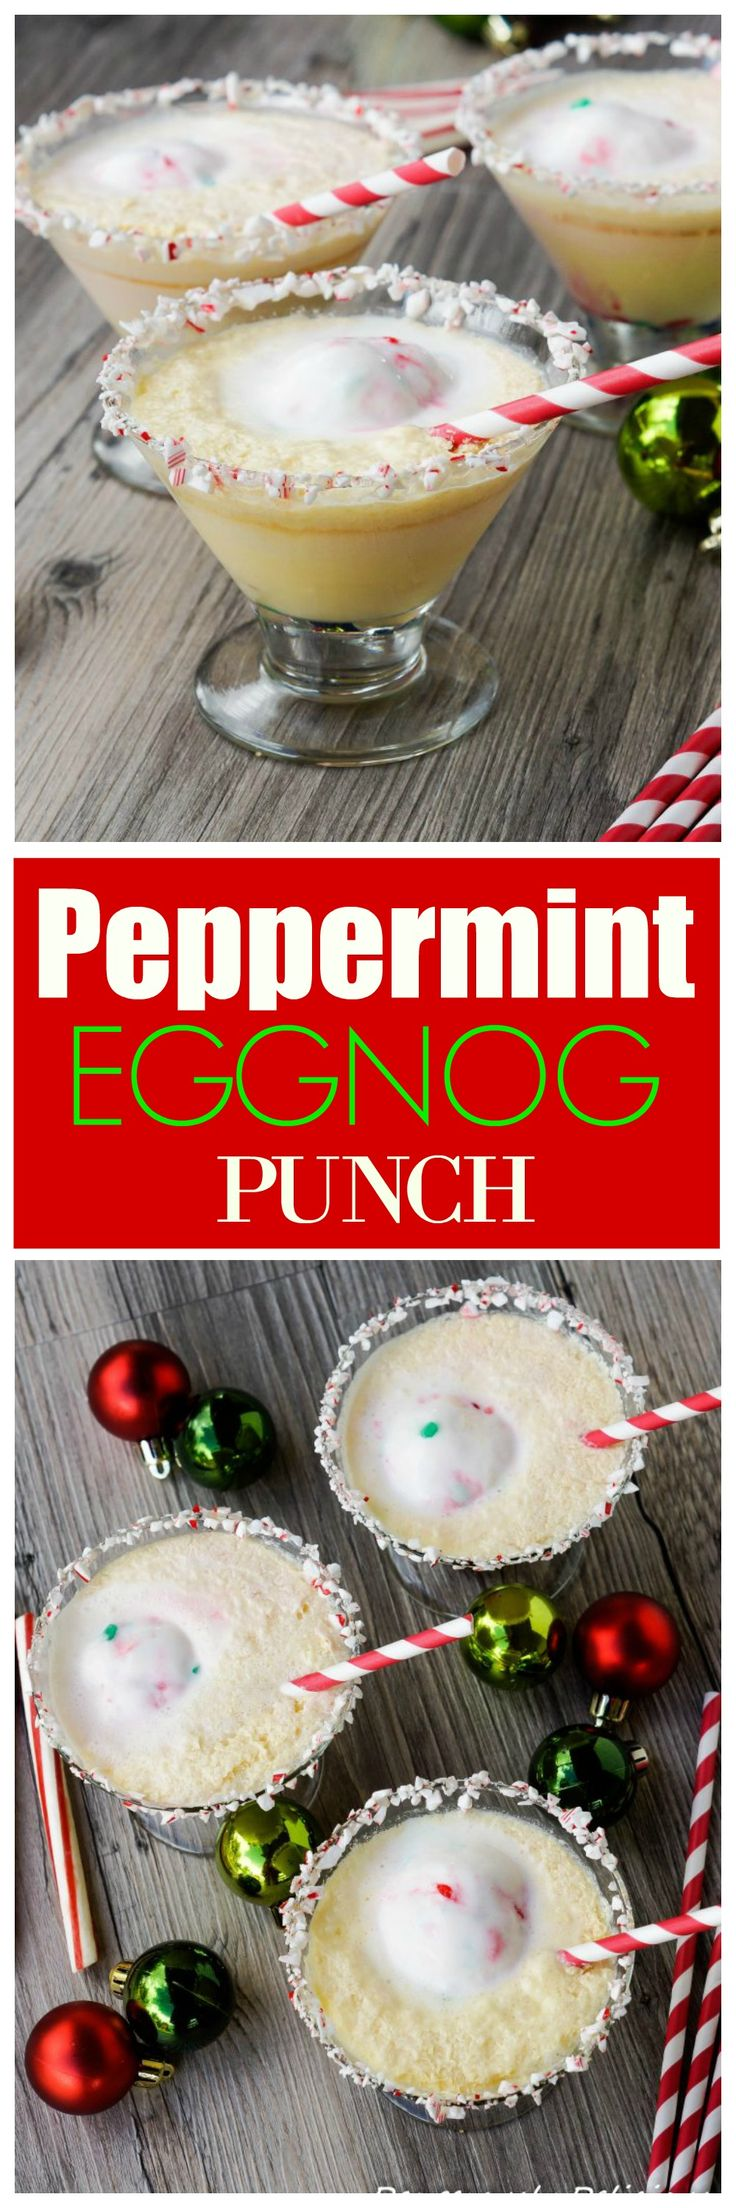 Peppermint Eggnog Punch - a non-alcoholic festive drink for Christmas!